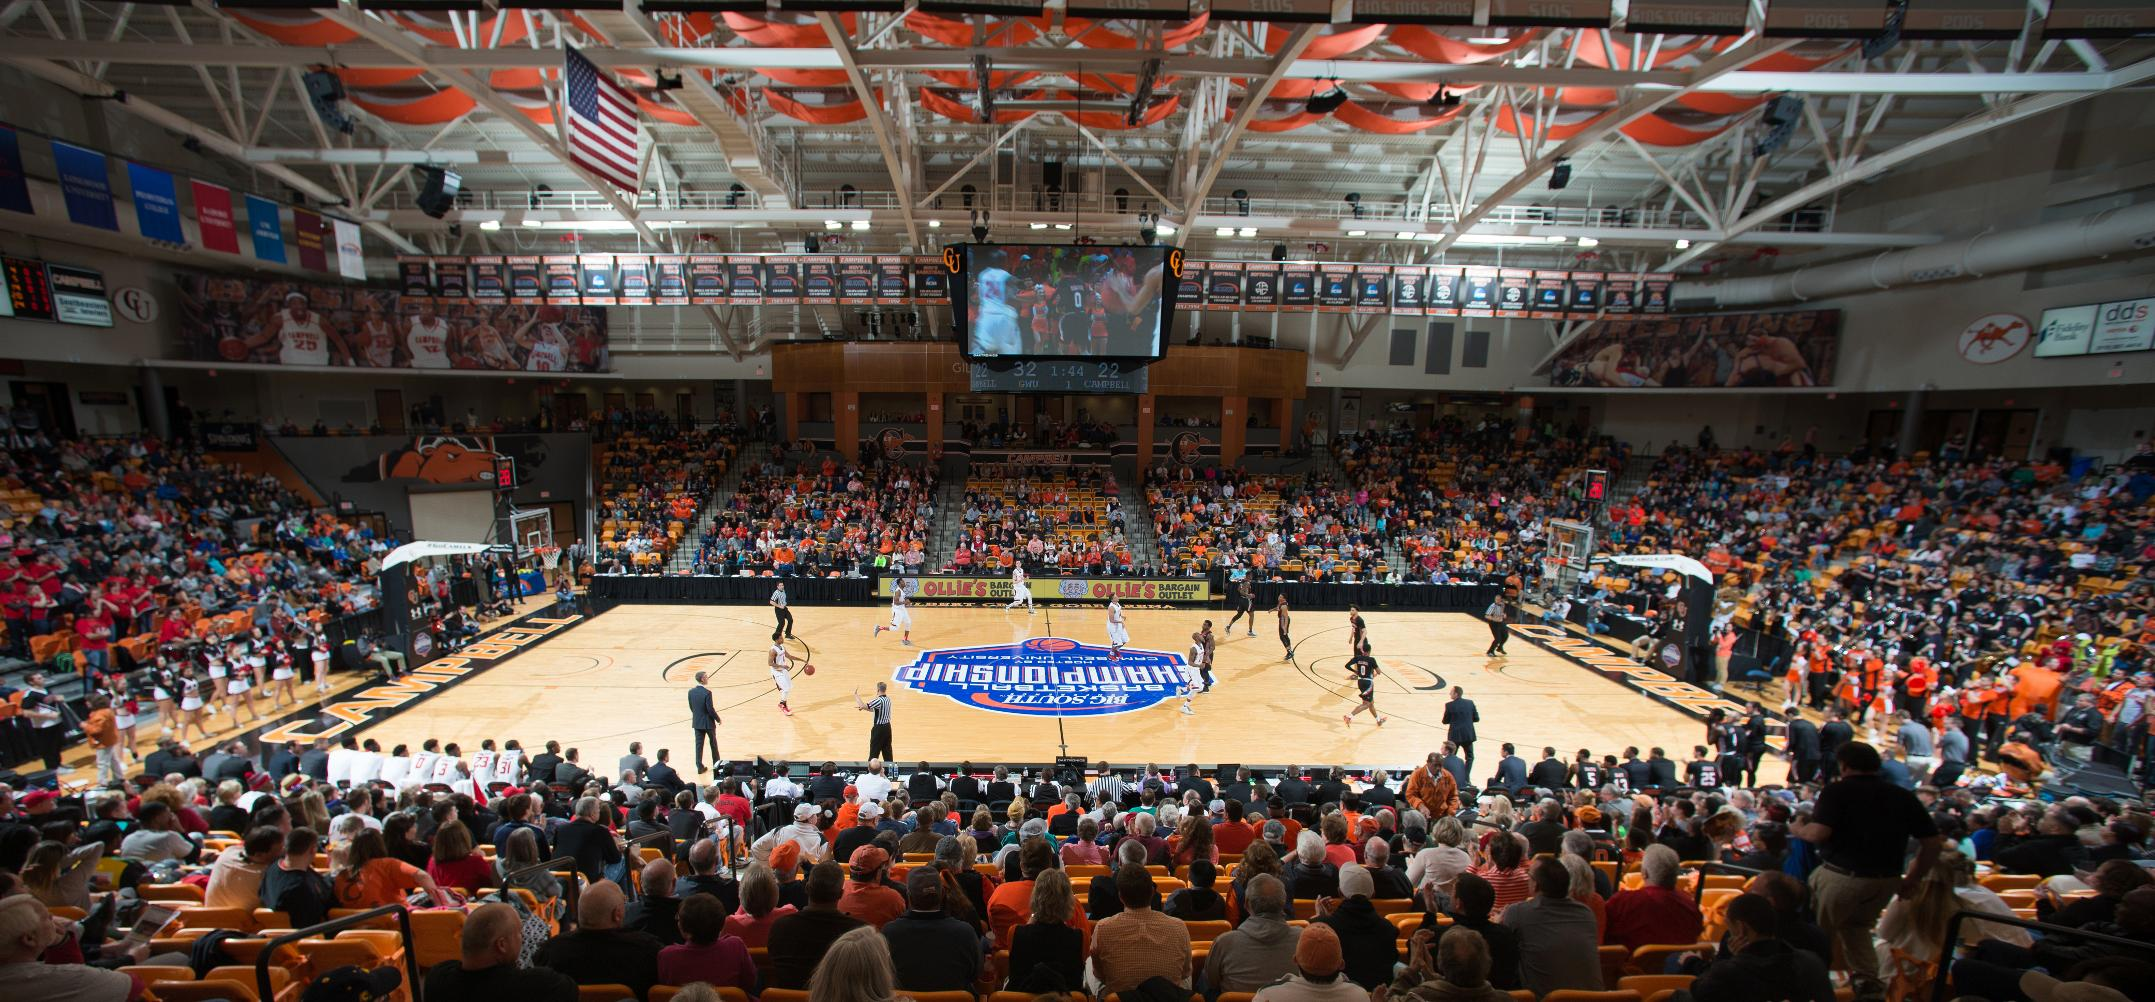 Gore Arena/John W  Pope Jr  Convocation Center - Campbell